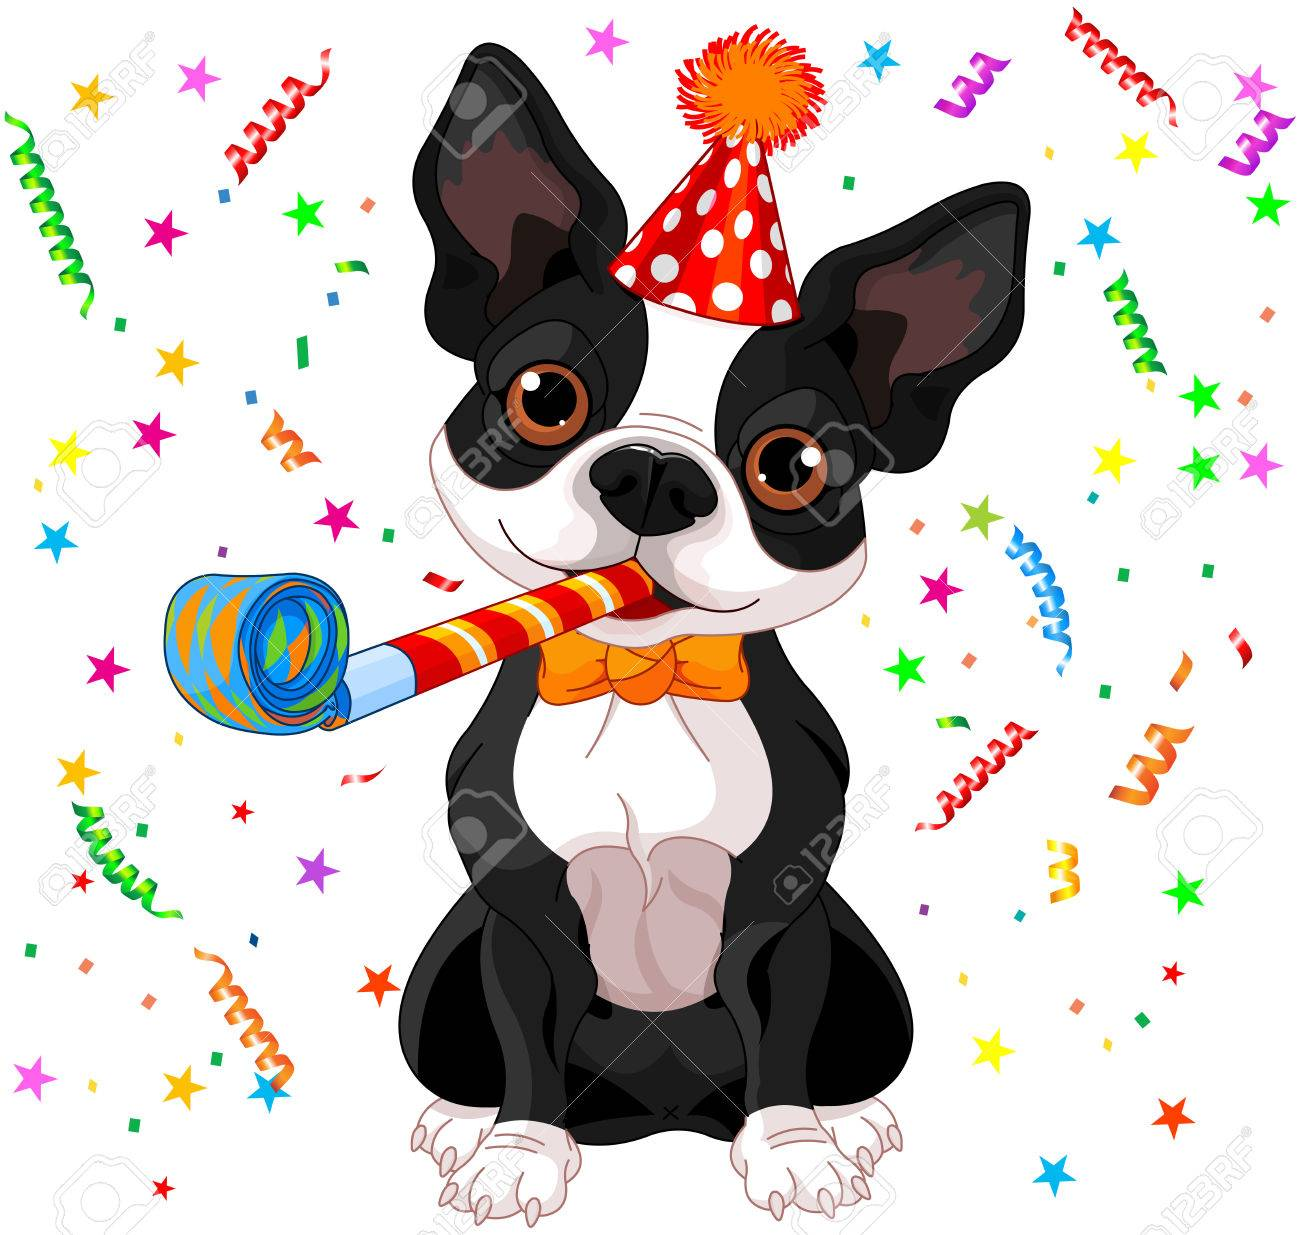 L'équitation sans mors 35588778-illustration-of-cute-boston-terrier-celebrating